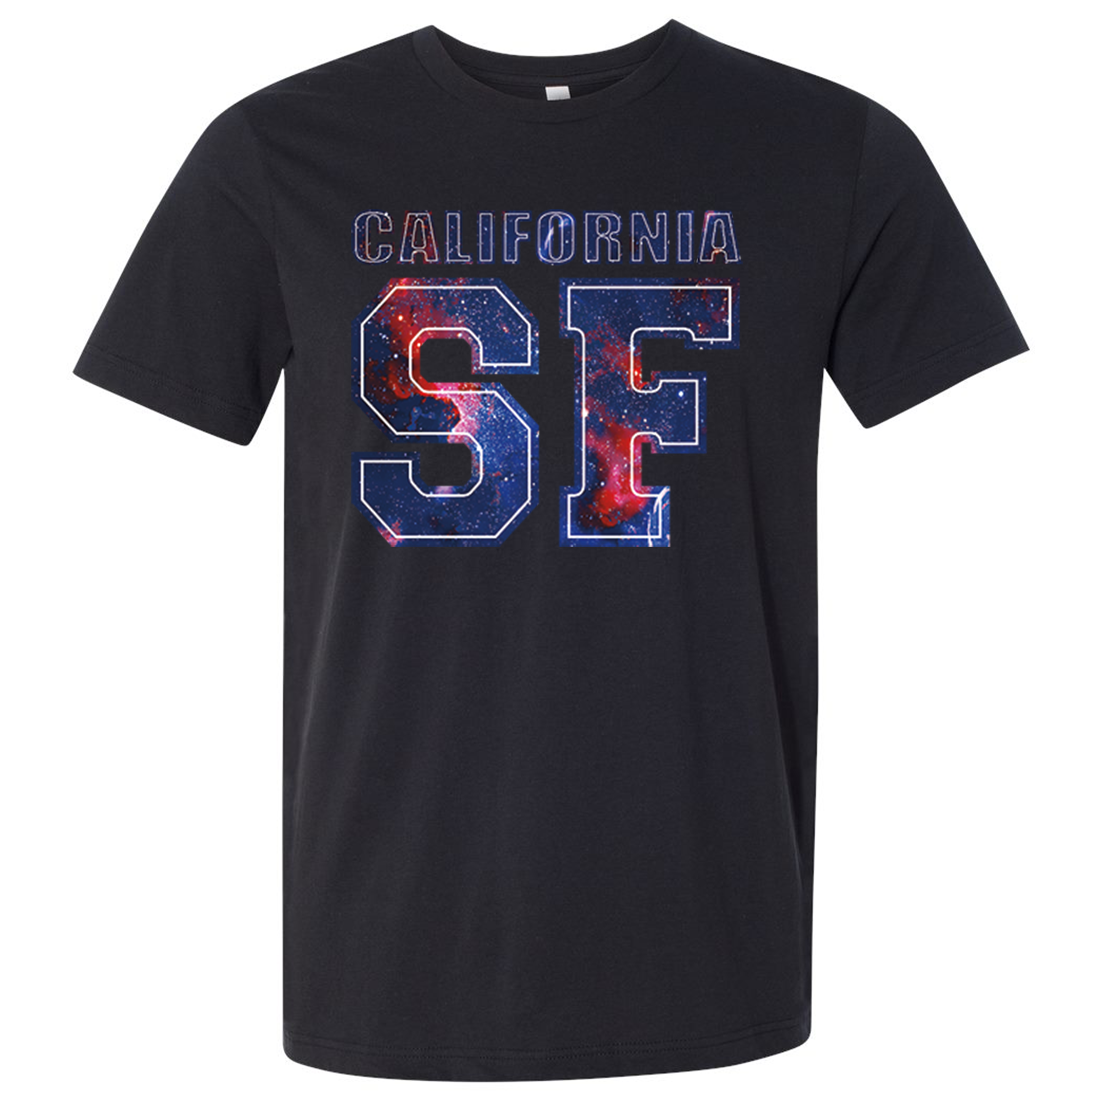 California SF Nebula Asst Colors Mens Lightweight Fitted T-Shirt/tee